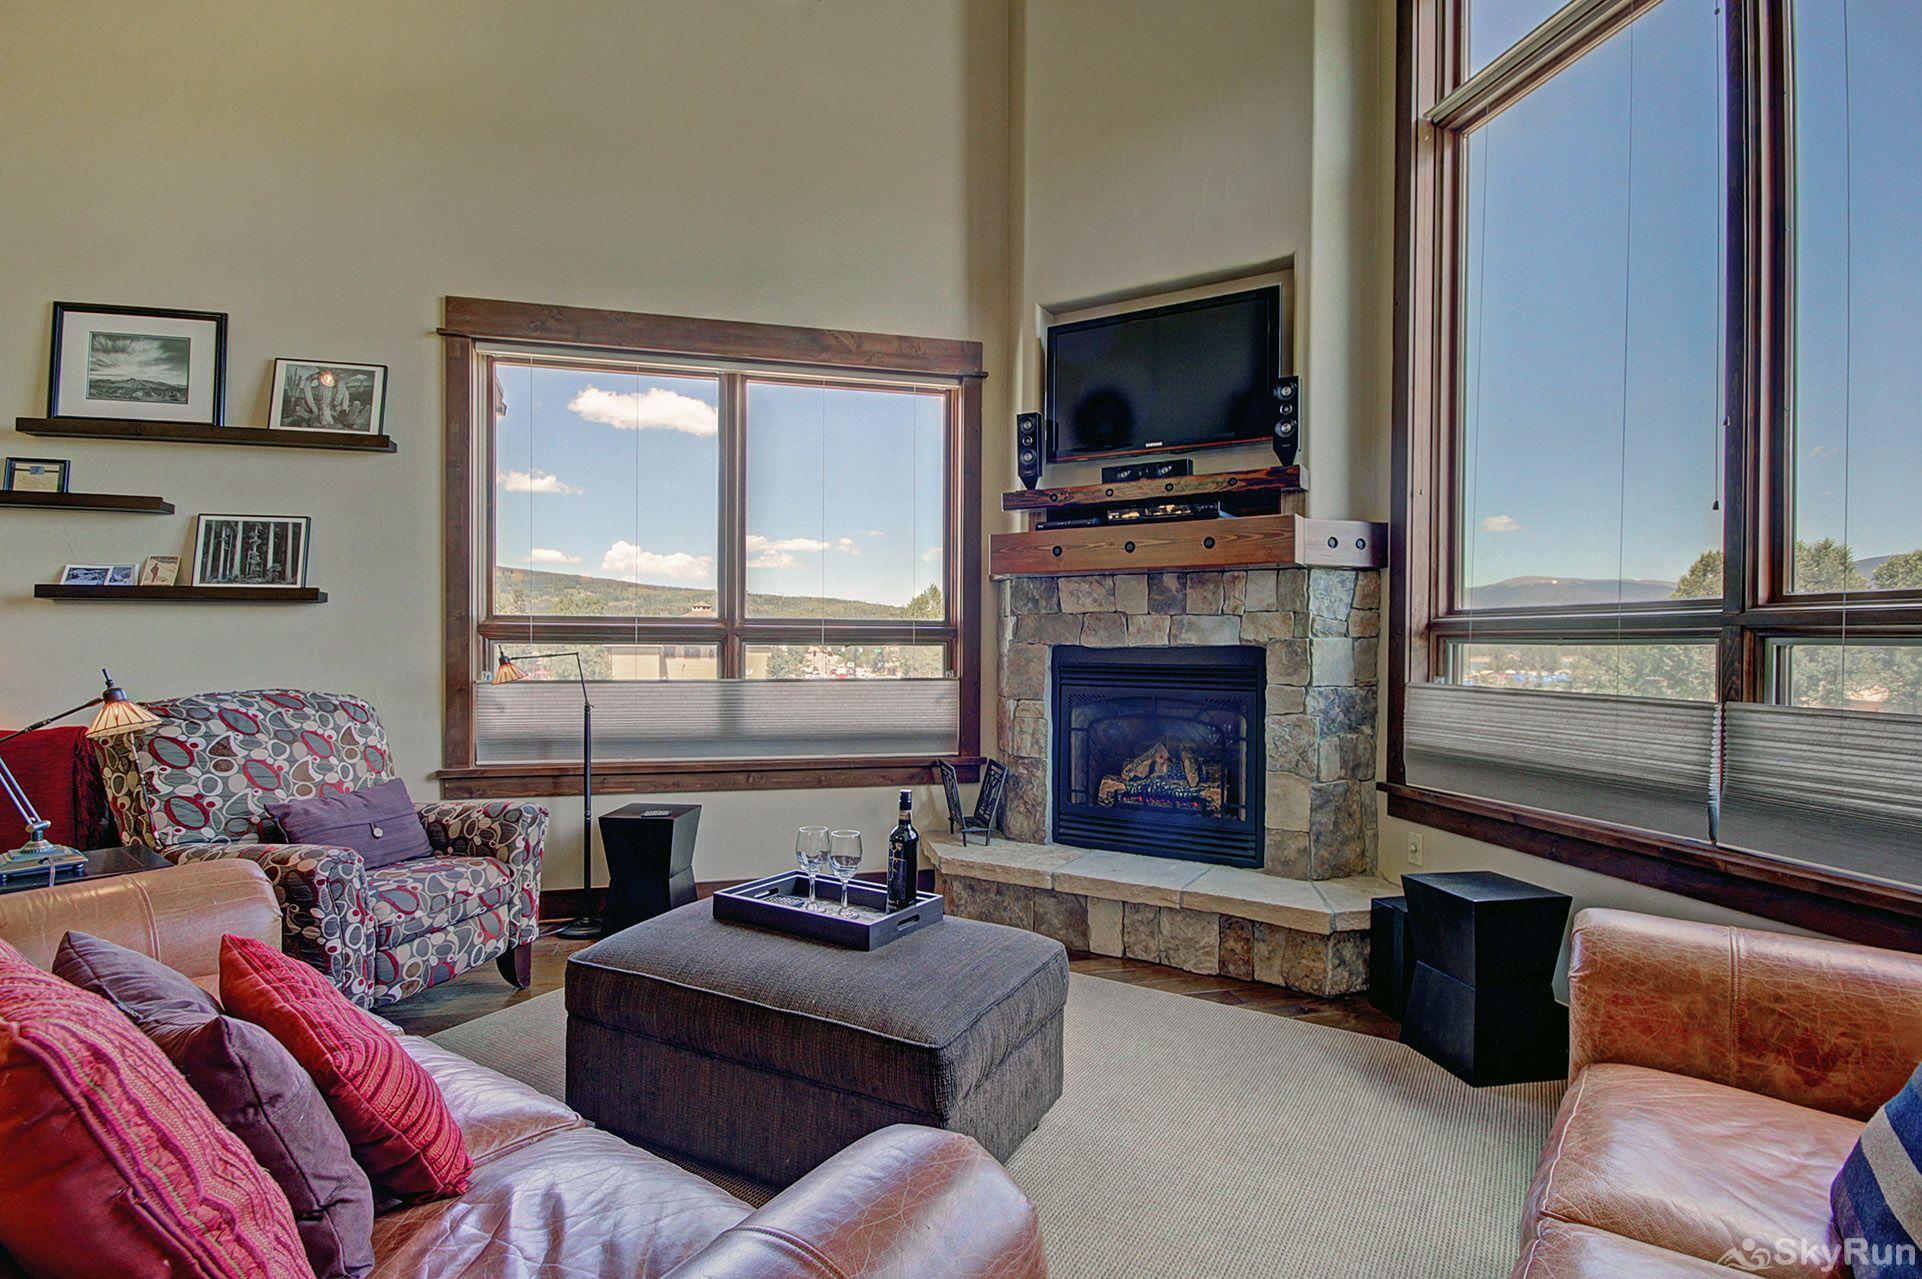 B201 WaterTower Place 3BR 3BA Stunning Great Room